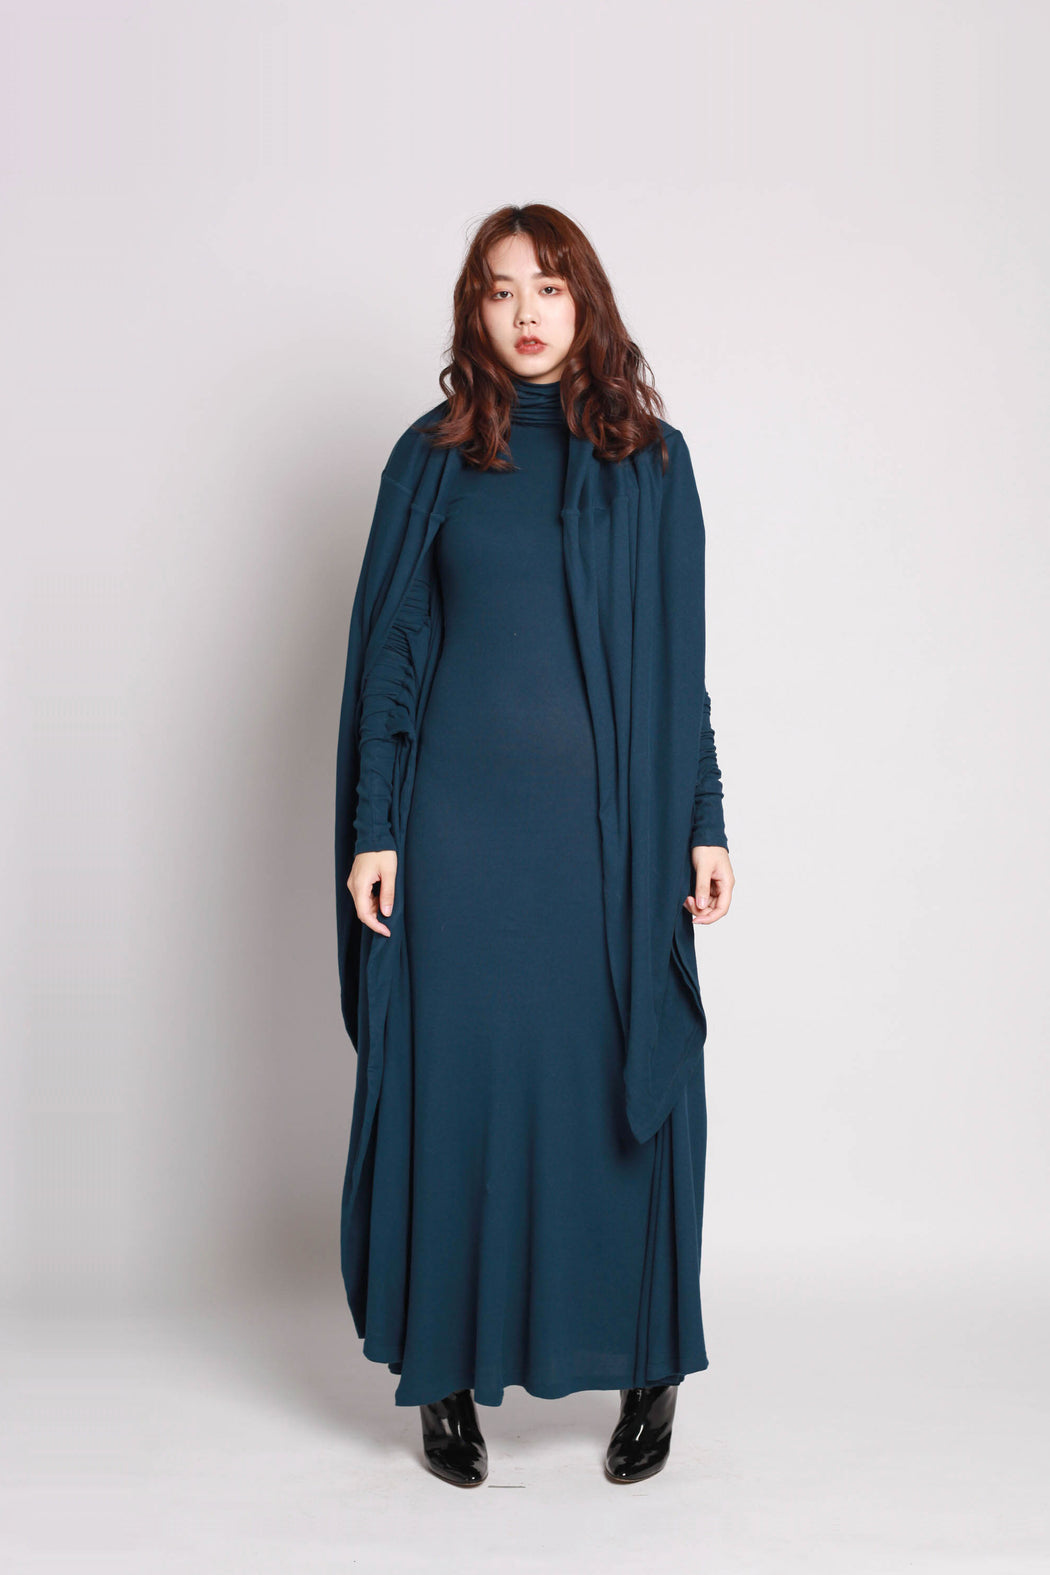 Square Dress - Navy